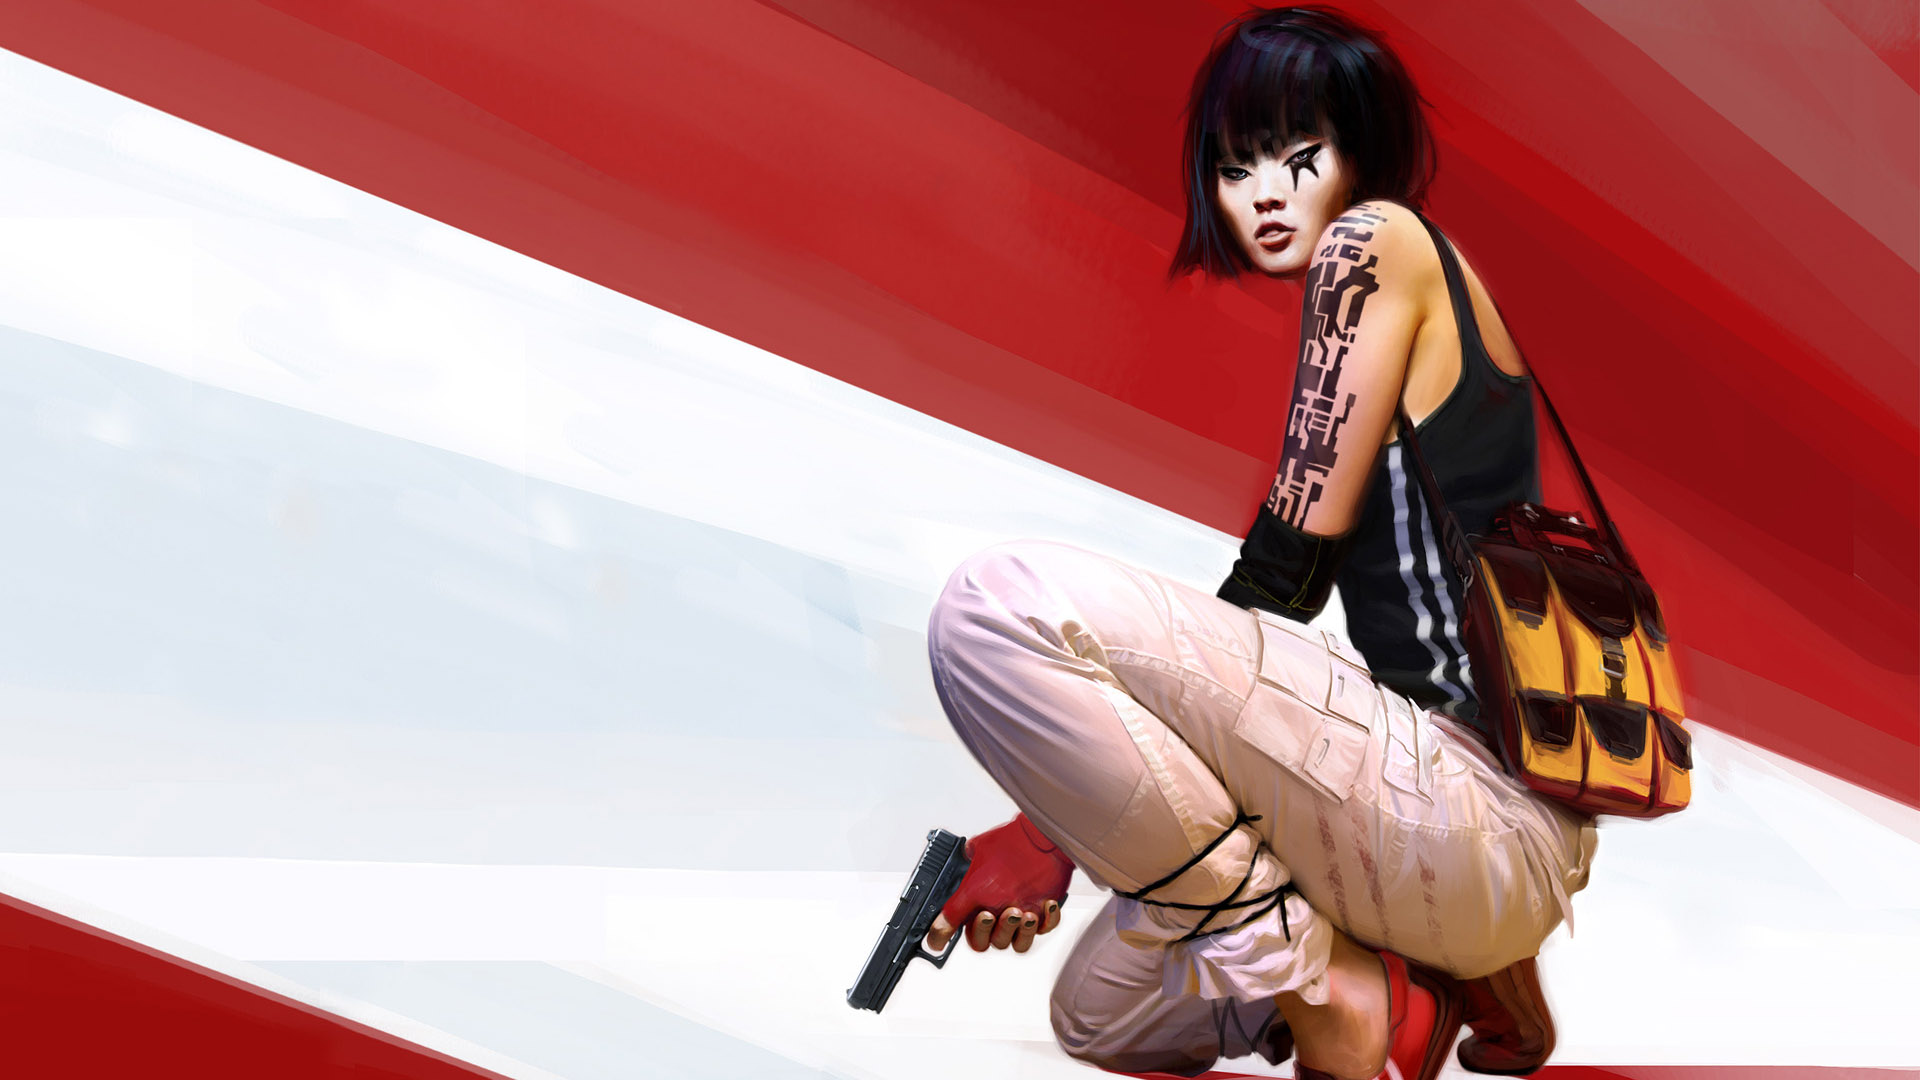 Mirror's Edge - Crouched and Ready Wallpapers